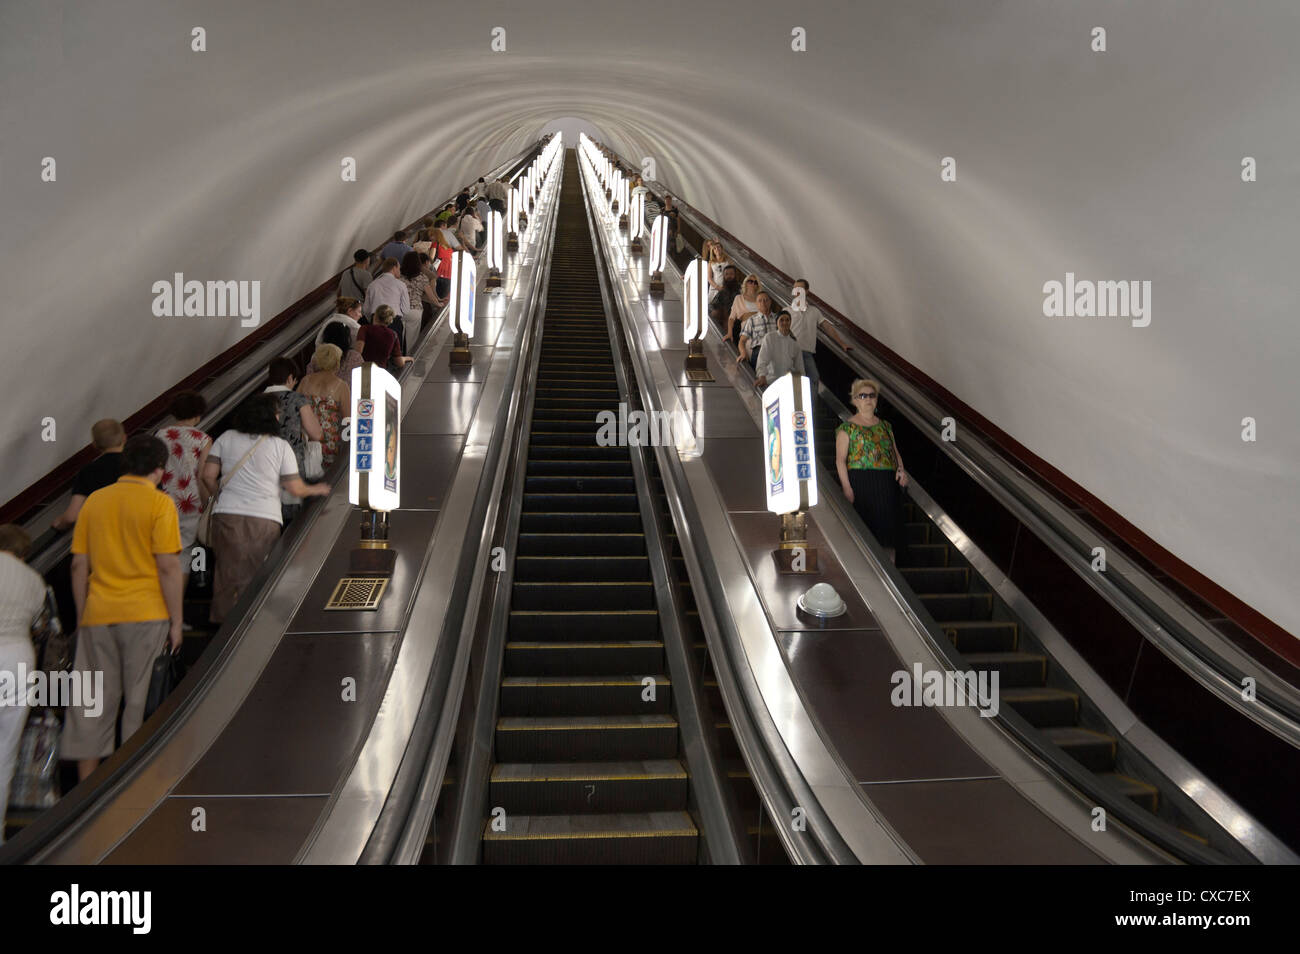 Metro escalator, Kiev, Ukraine, Europe - Stock Image